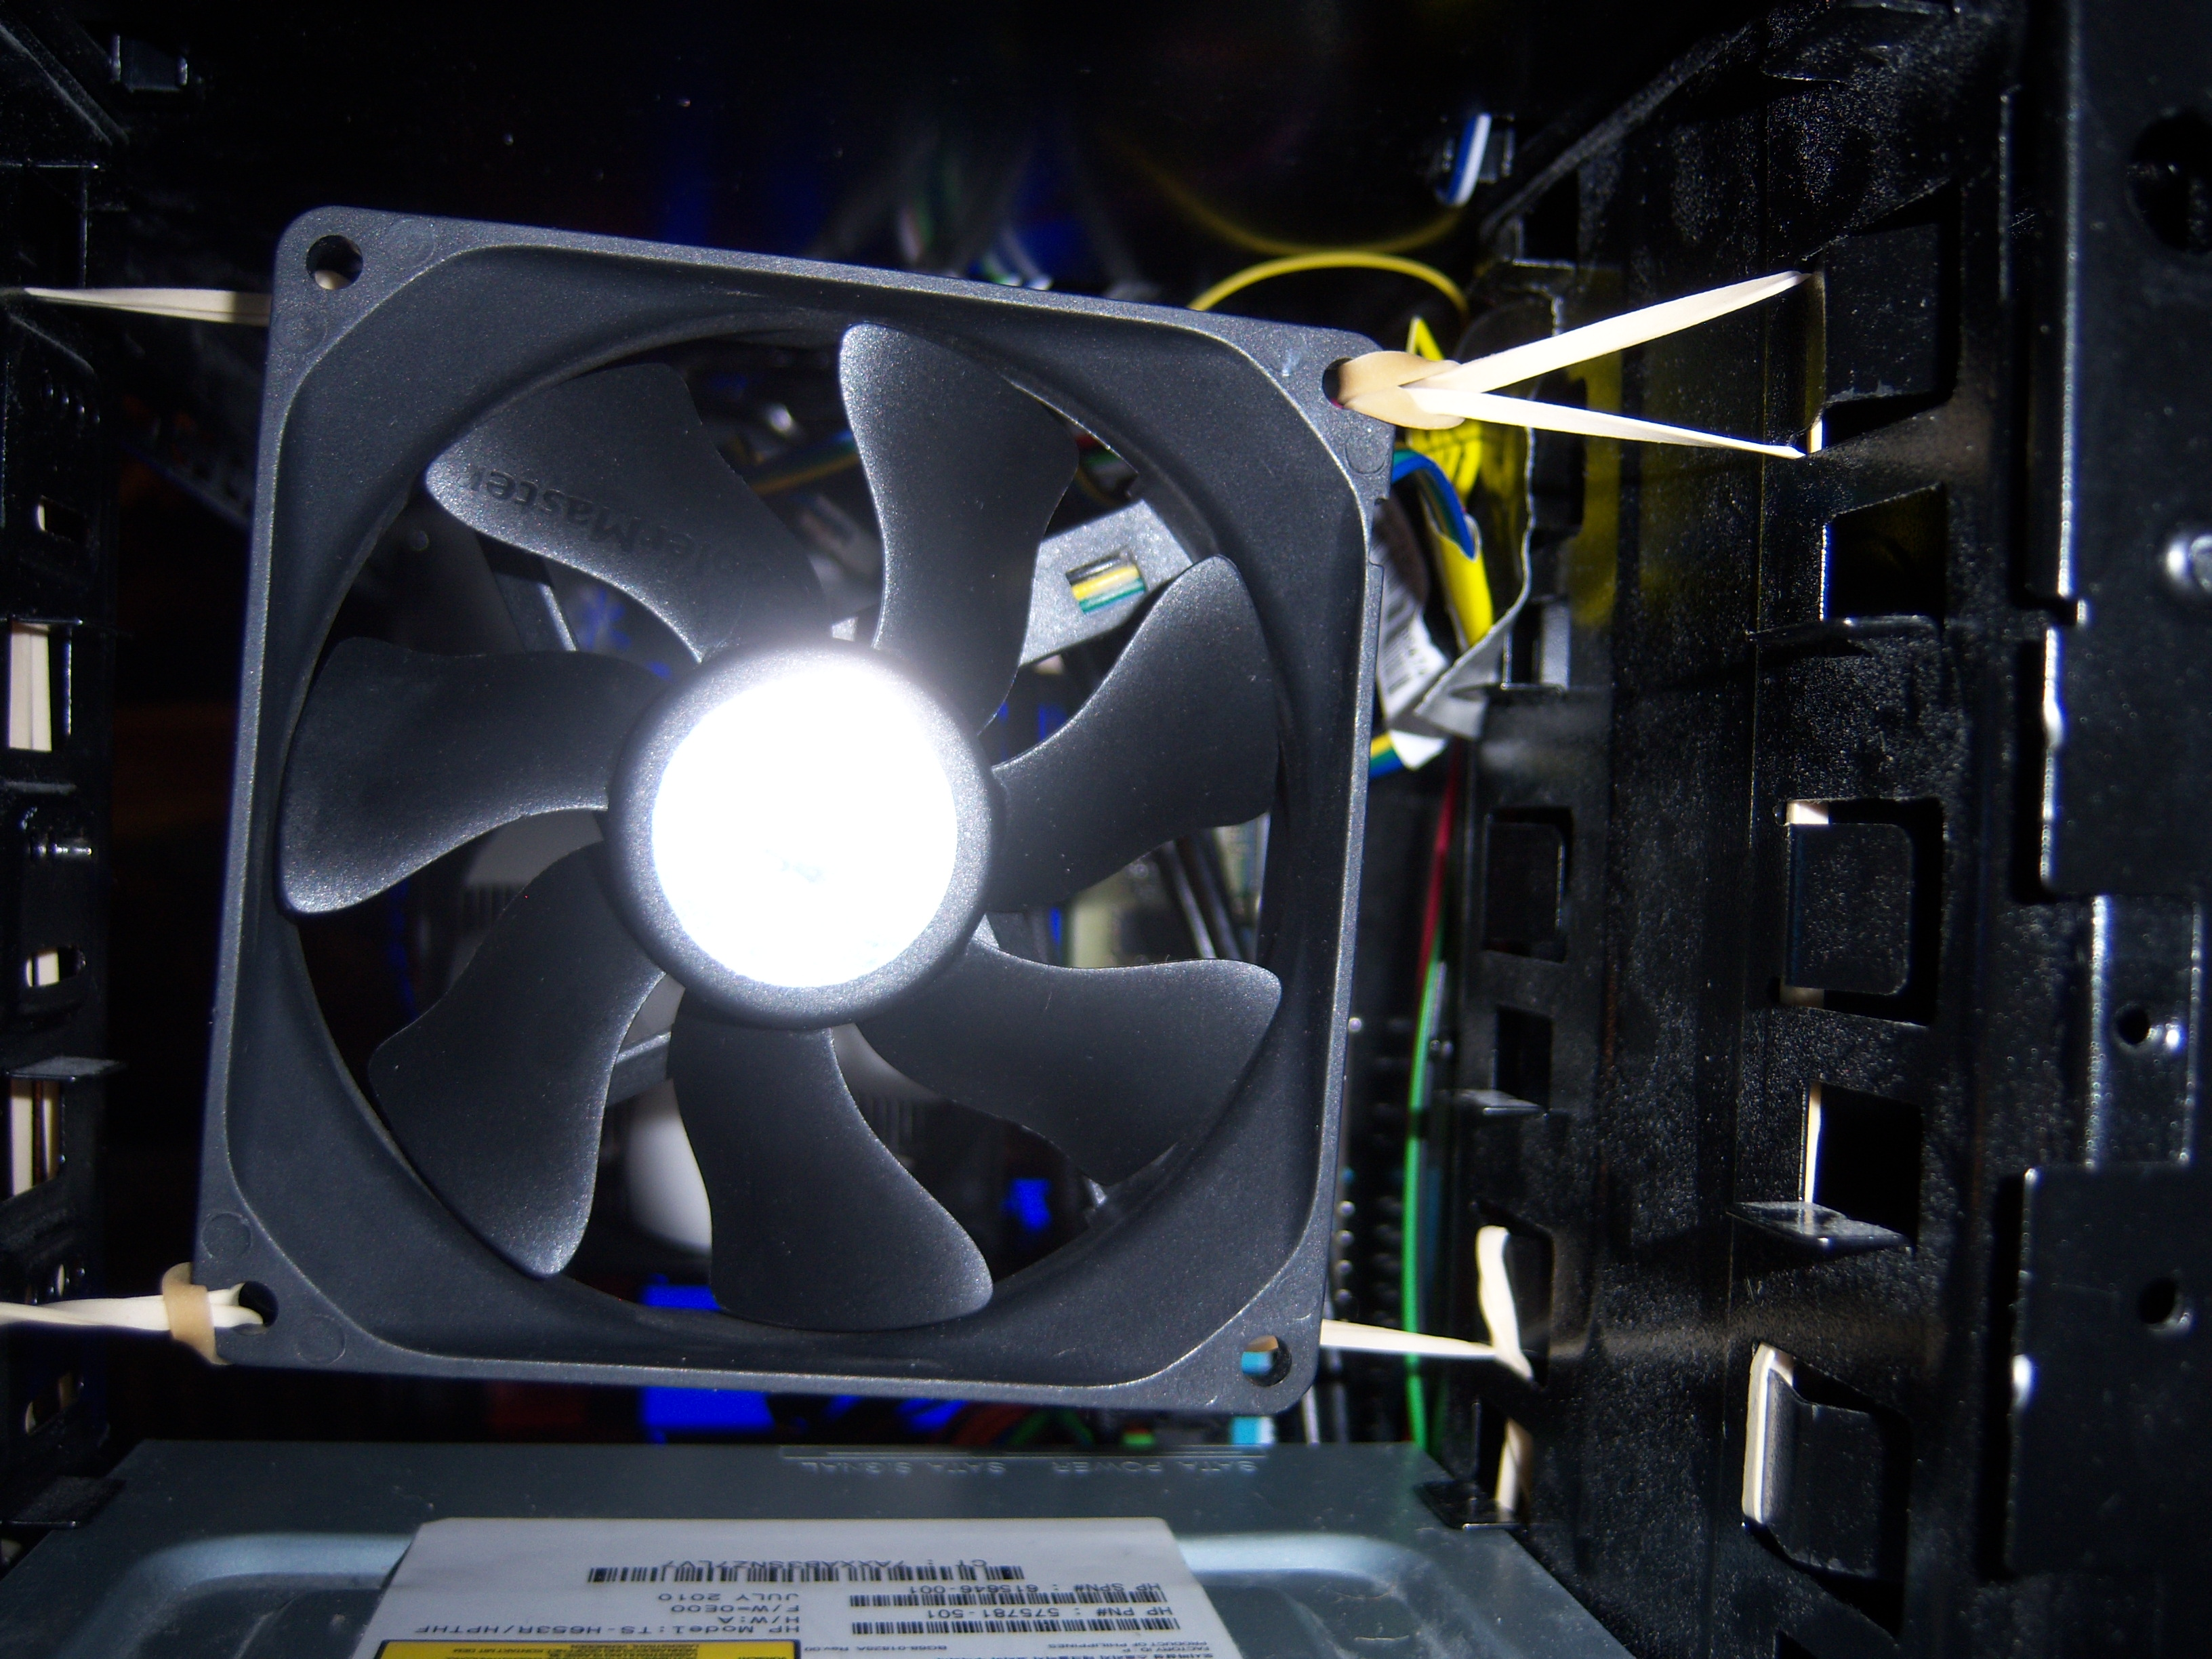 """92mm fan above DVD drive in empty 5.25"""" bays. Used as extra intake to try and push air across the memory"""